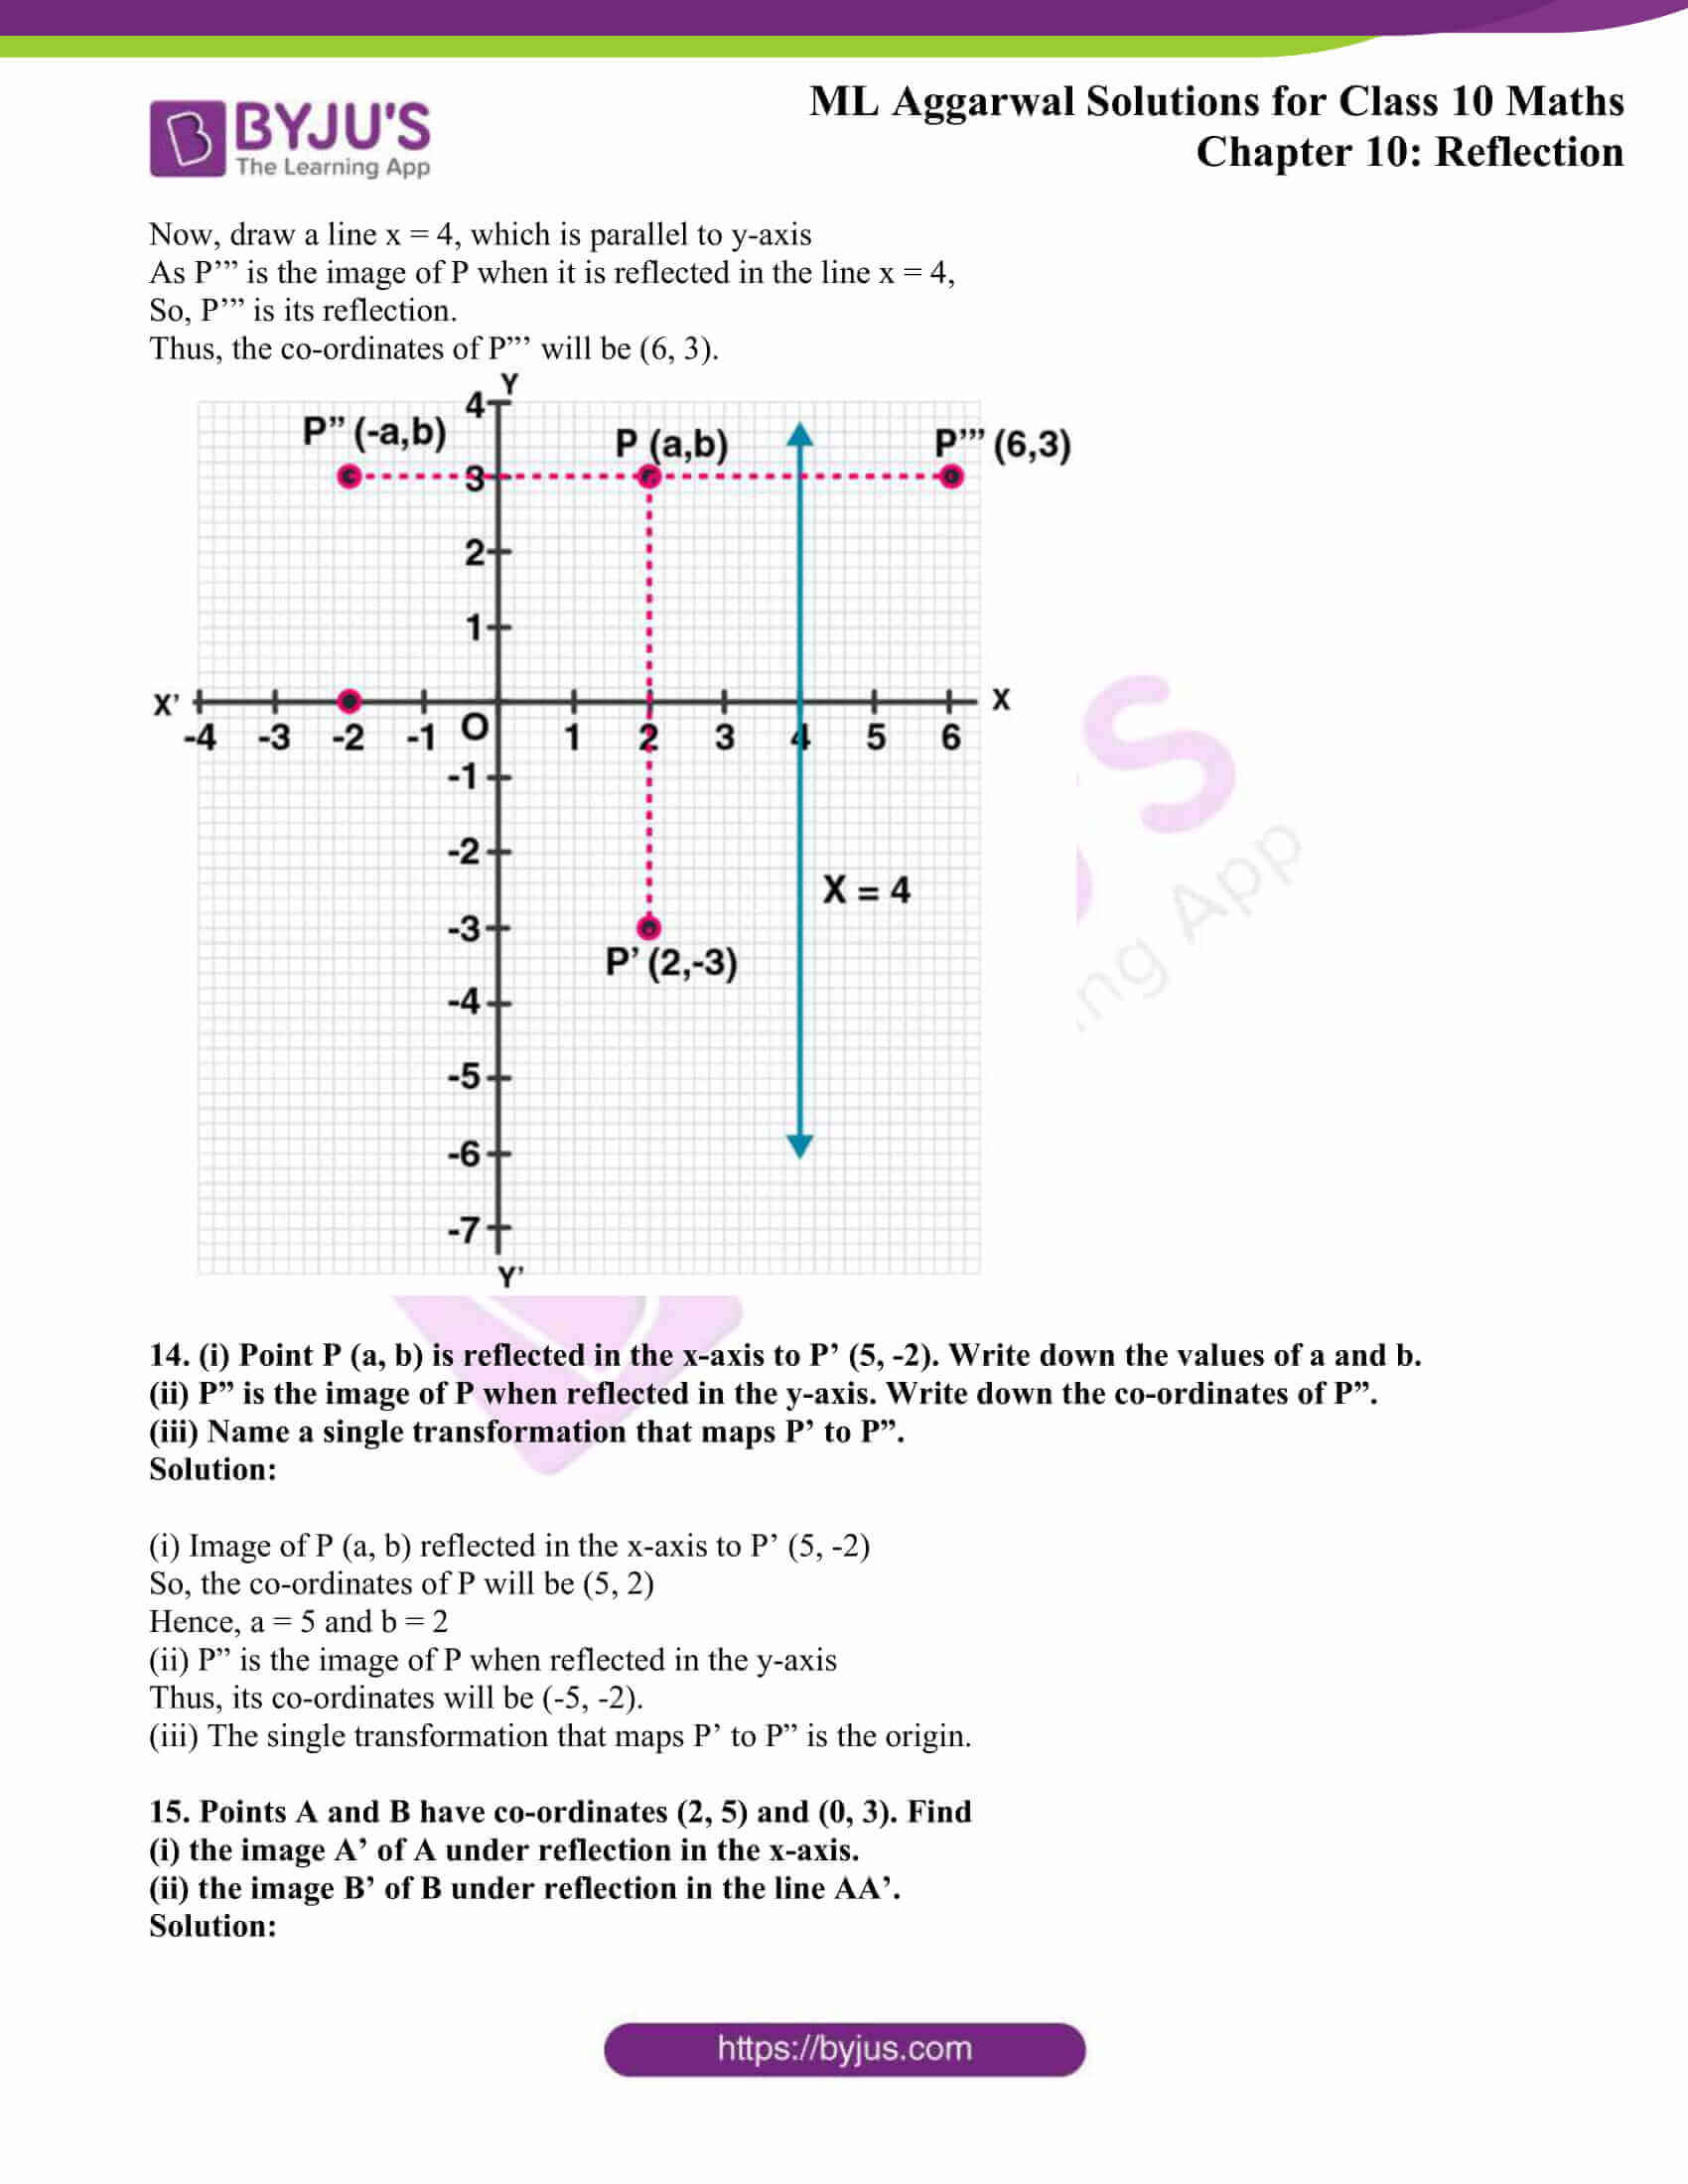 ml aggarwal solutions class 10 maths chapter 10 08